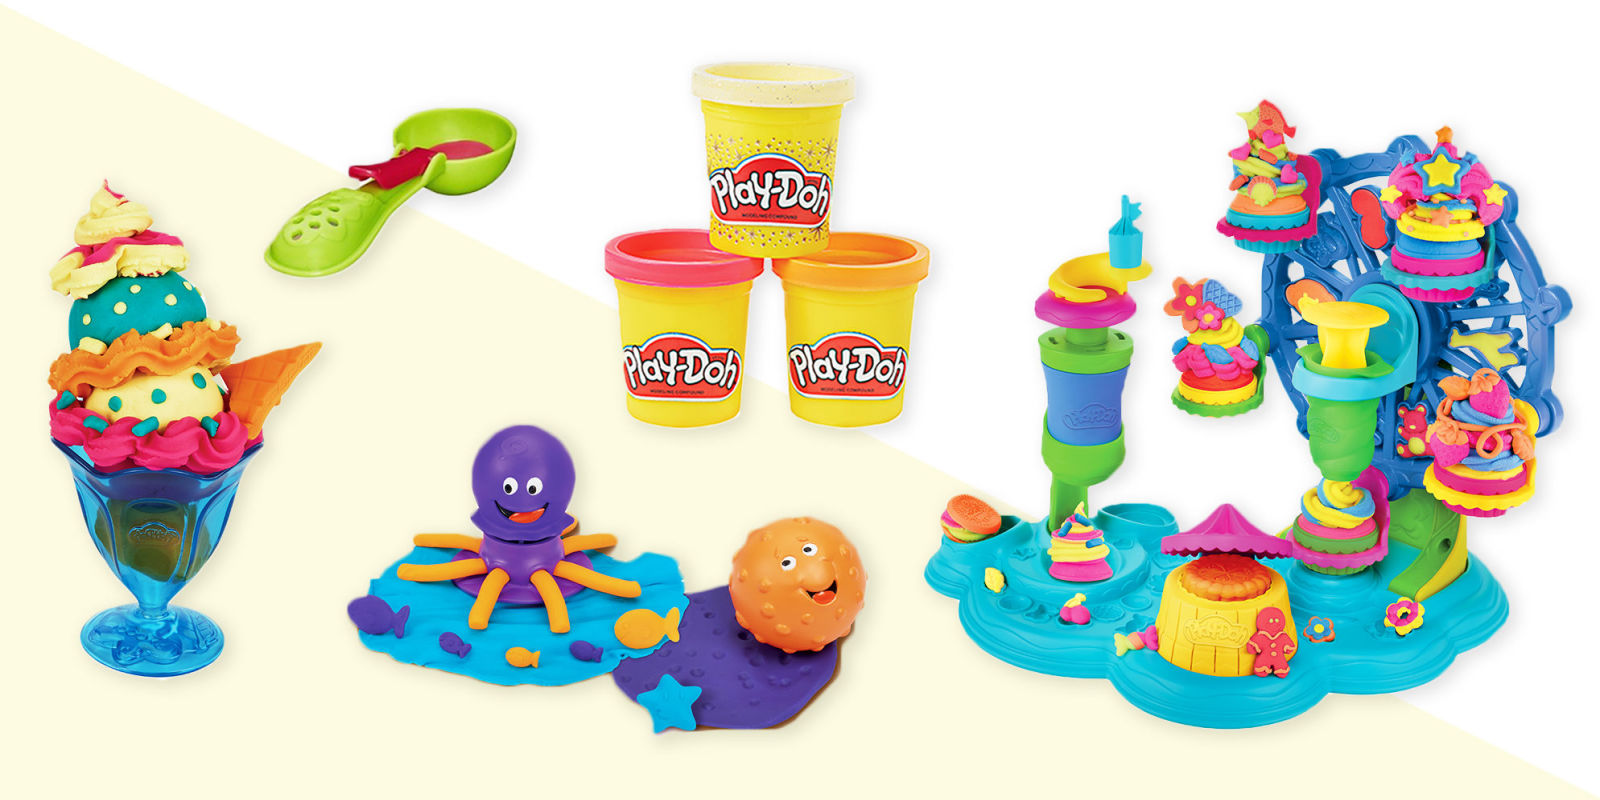 Play Doh Küche Knete Set 15 Best Play Doh Sets For 2017 Classic Play Doh Playsets